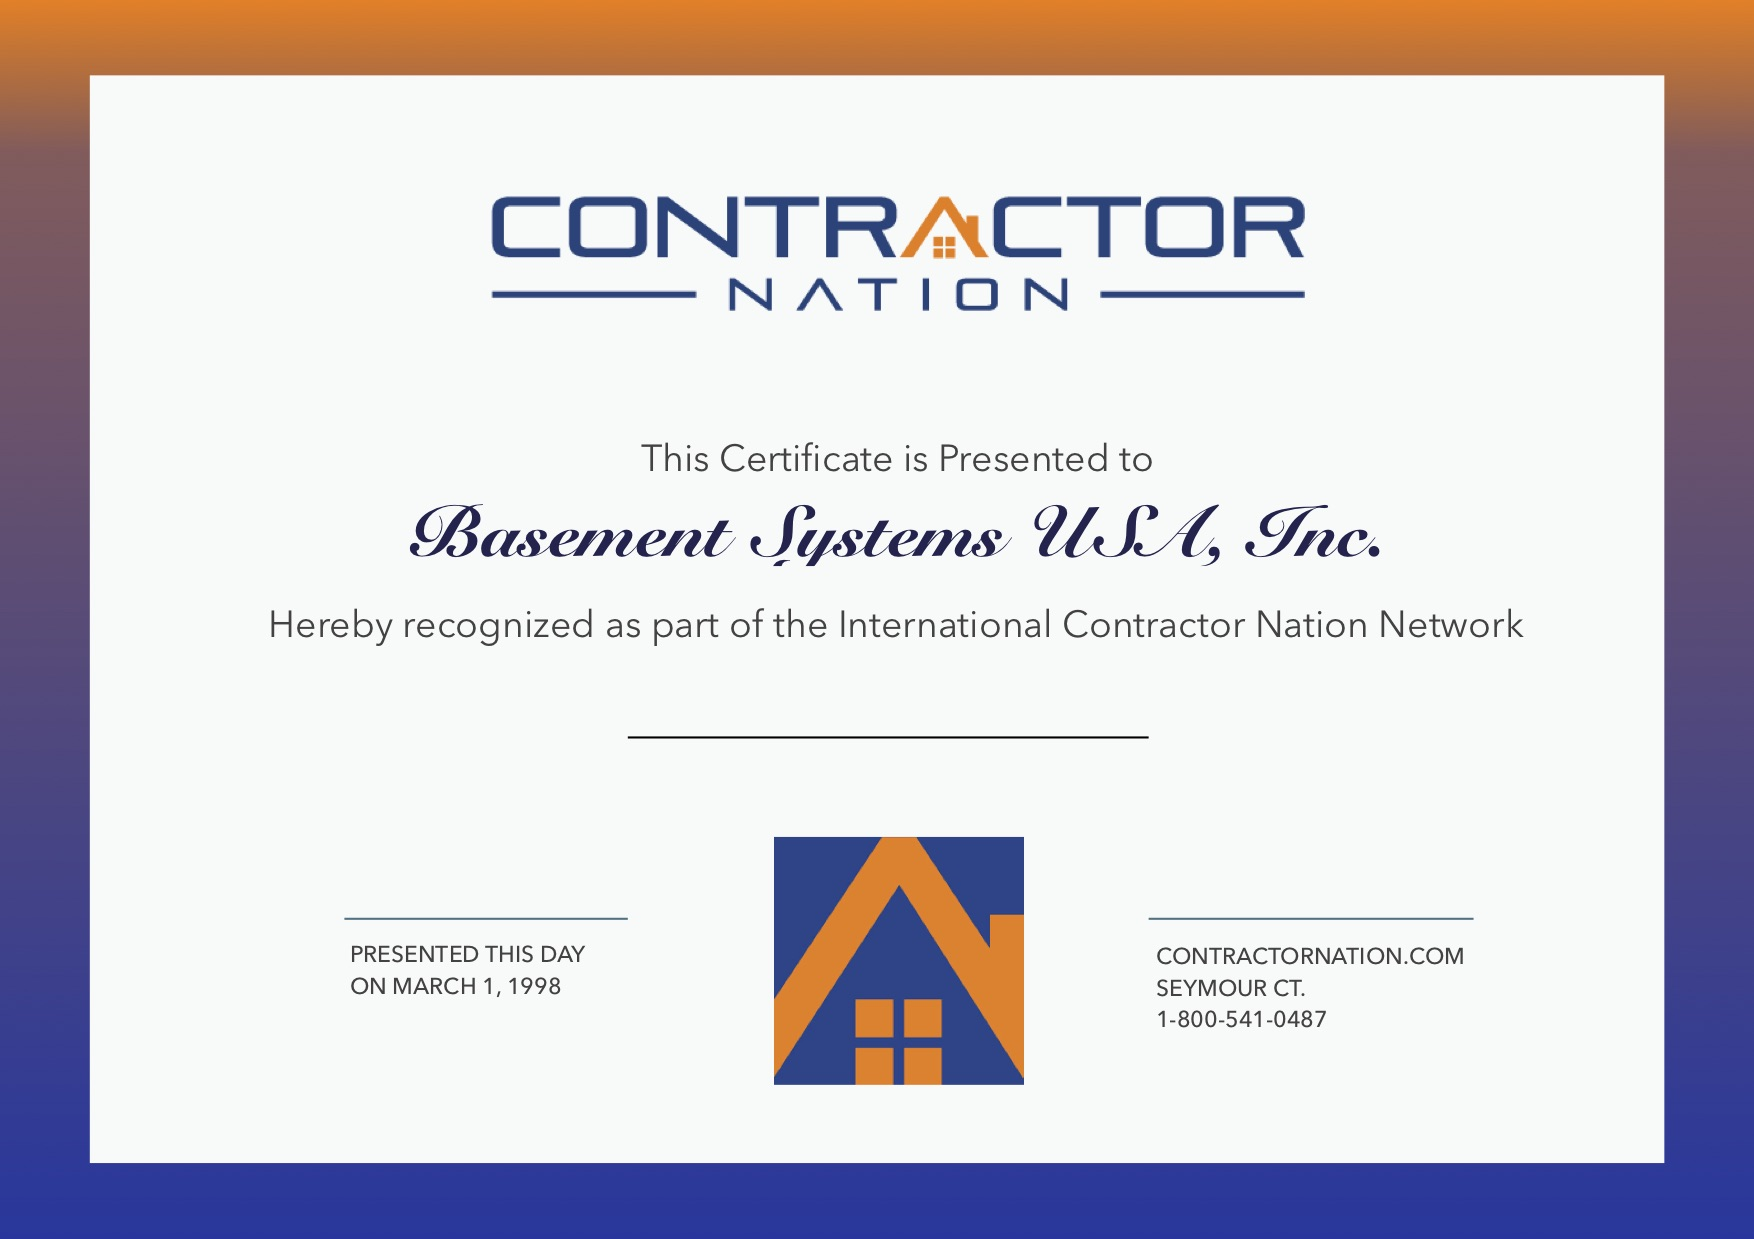 Contractor Nation Association